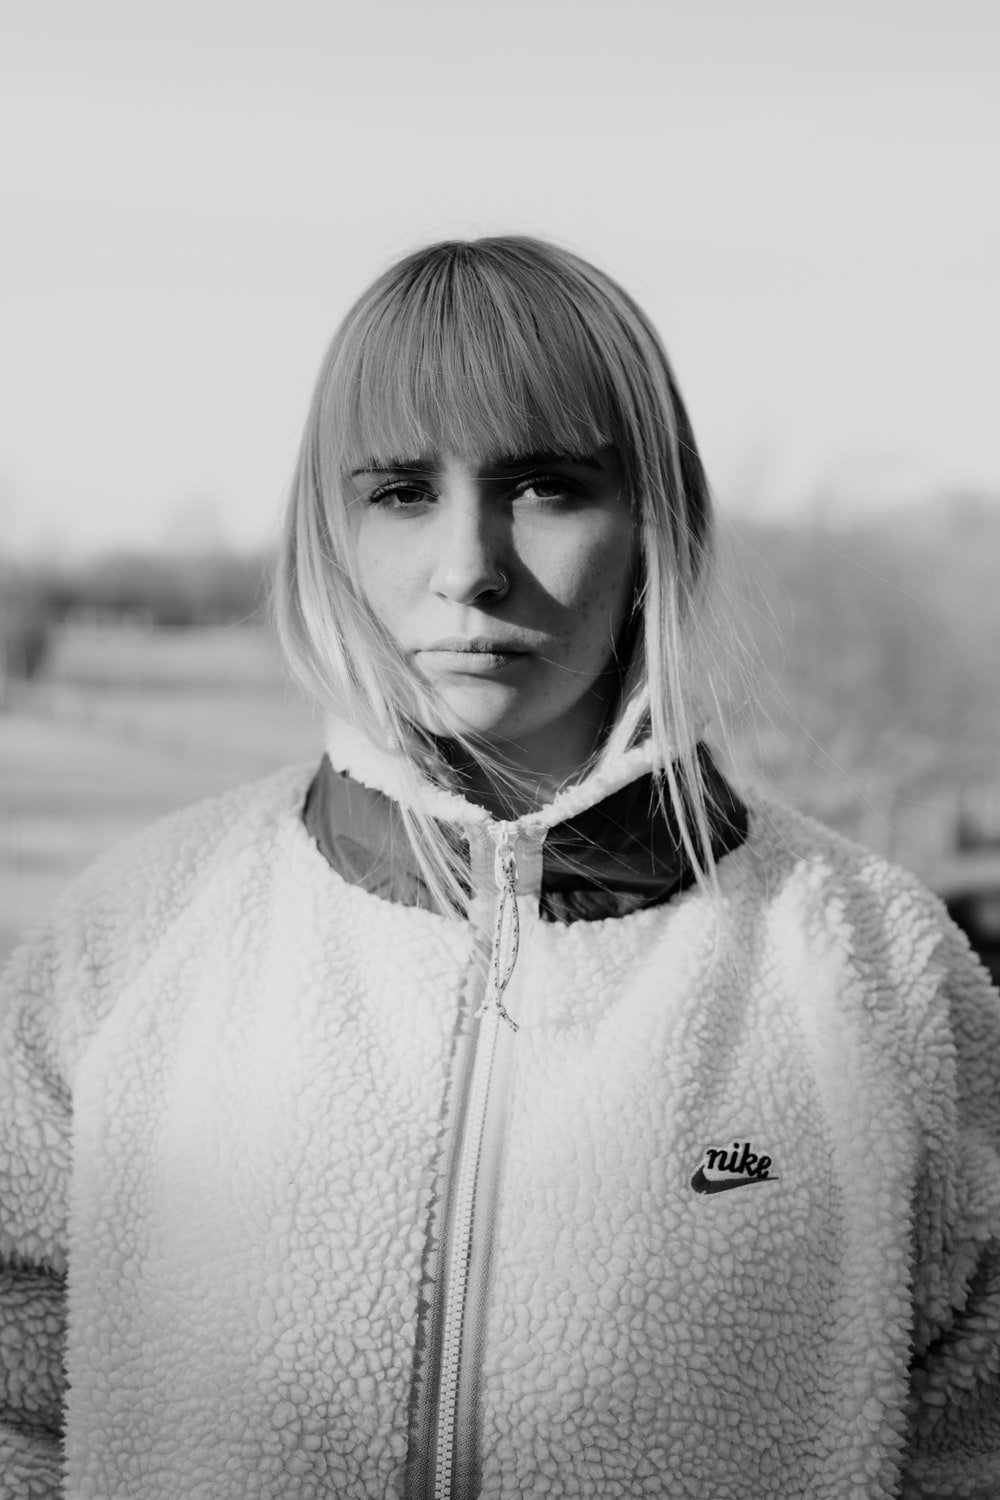 woman in white zip up jacket